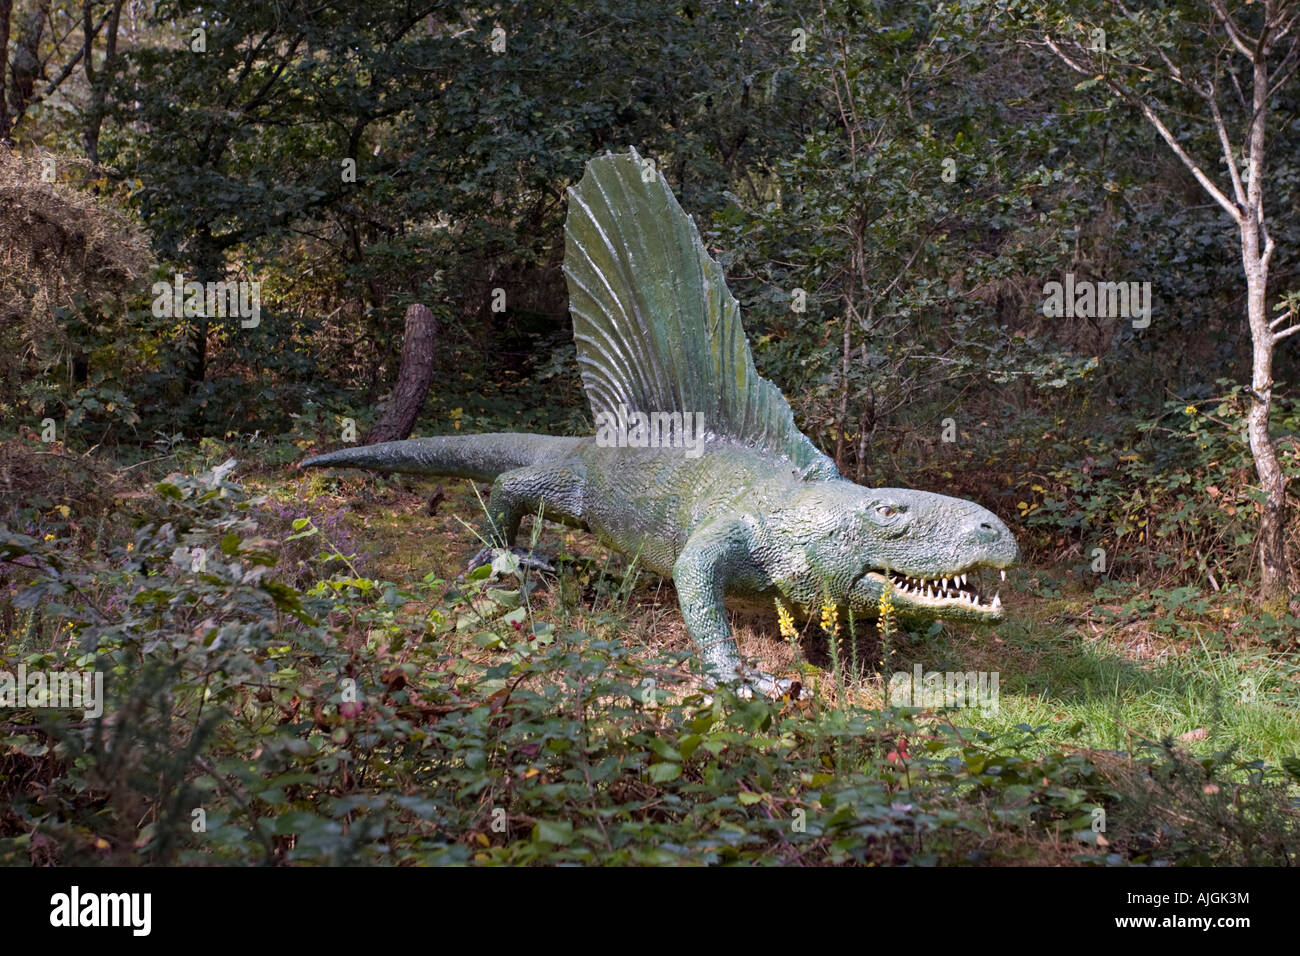 Lifesize model Dimetrodon an extinct predatory synapsid pelycosaur reptile Permian period Dinosaur Park France - Stock Image